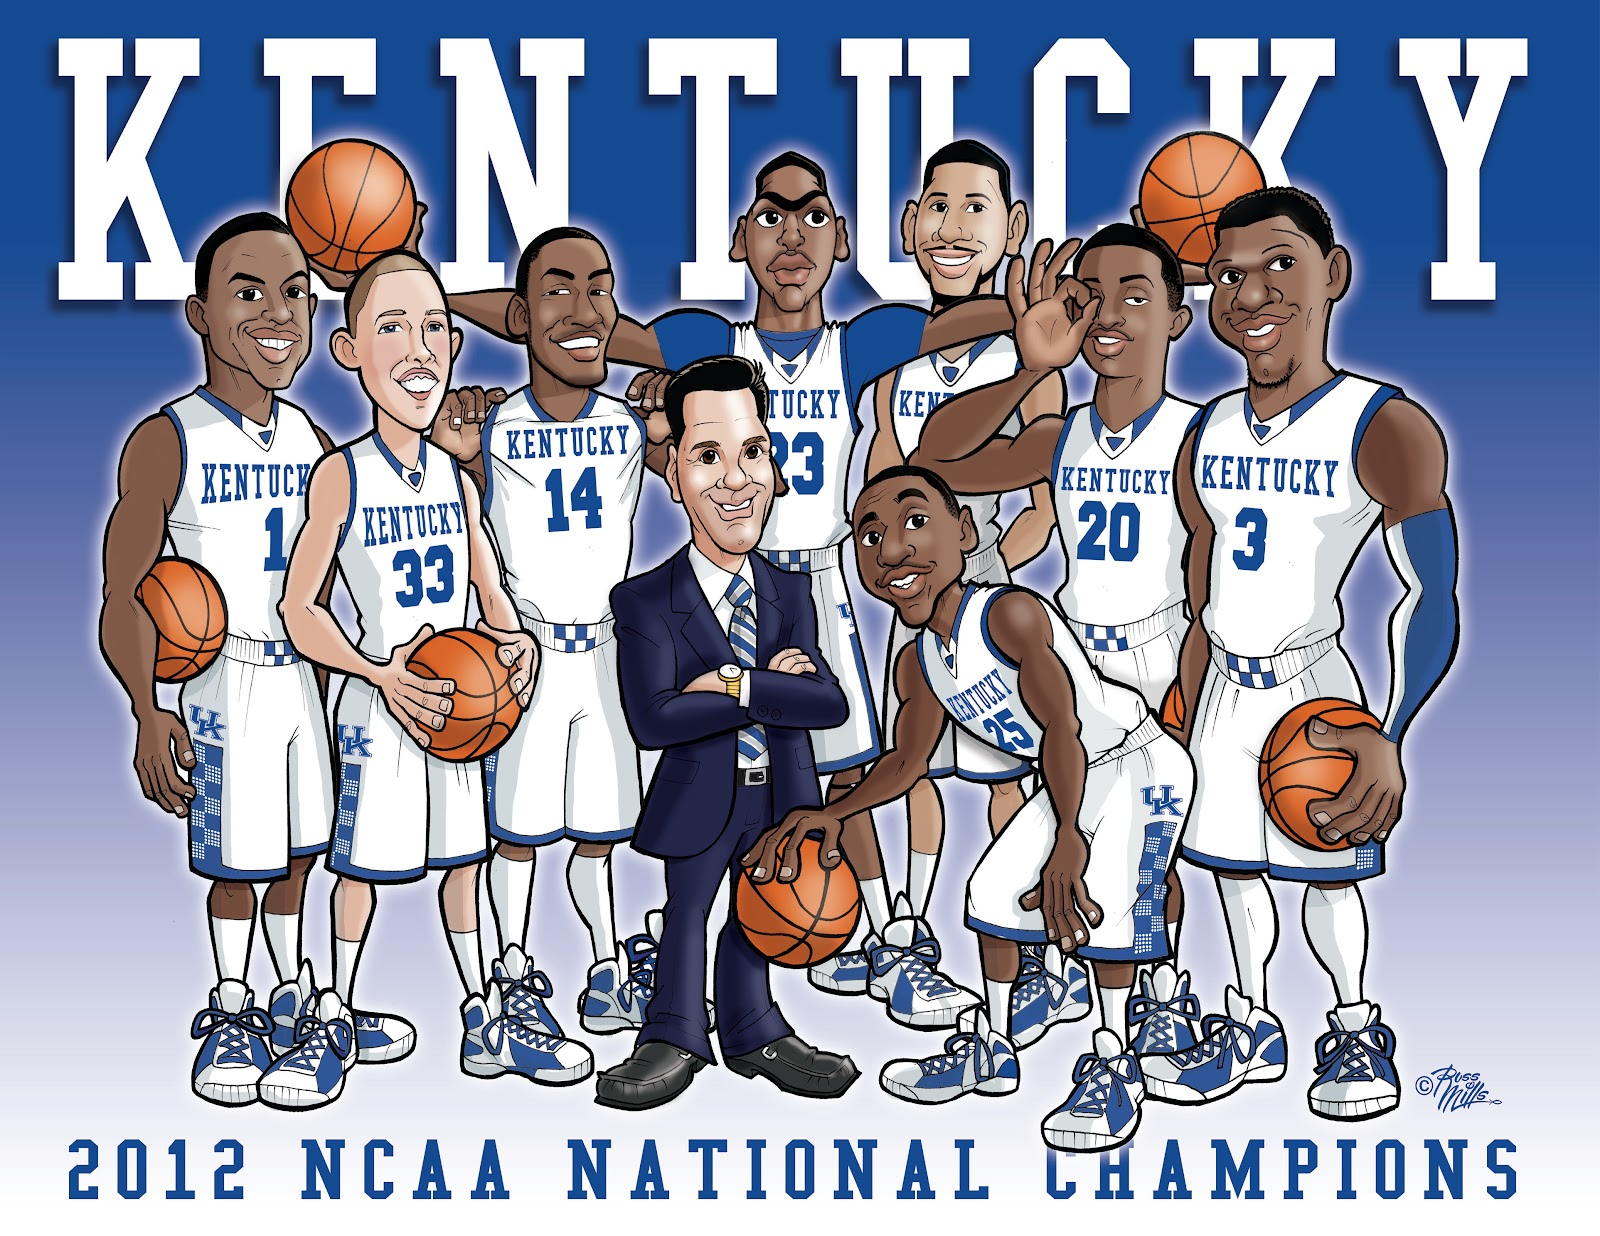 UK basketball 2012 champs